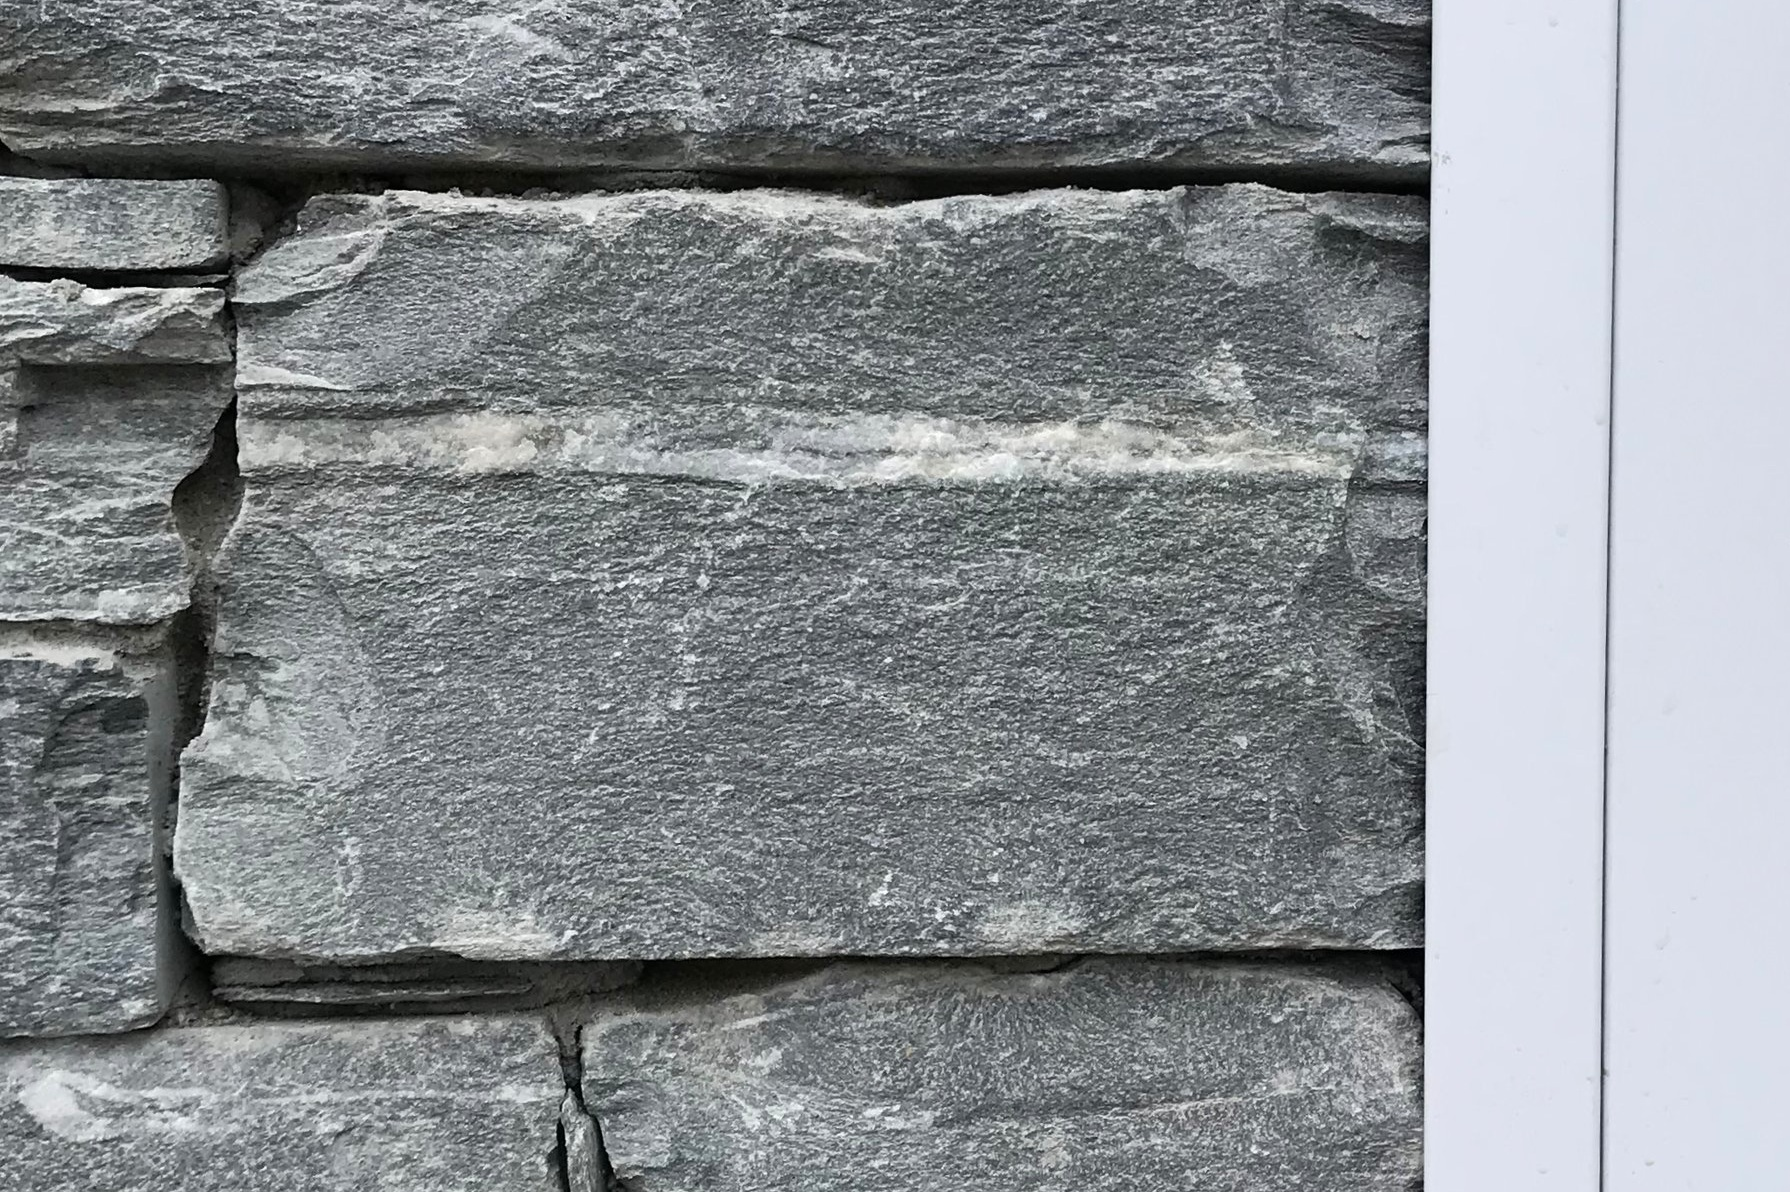 K2 Stone Facing - A modern product with timeless appeal